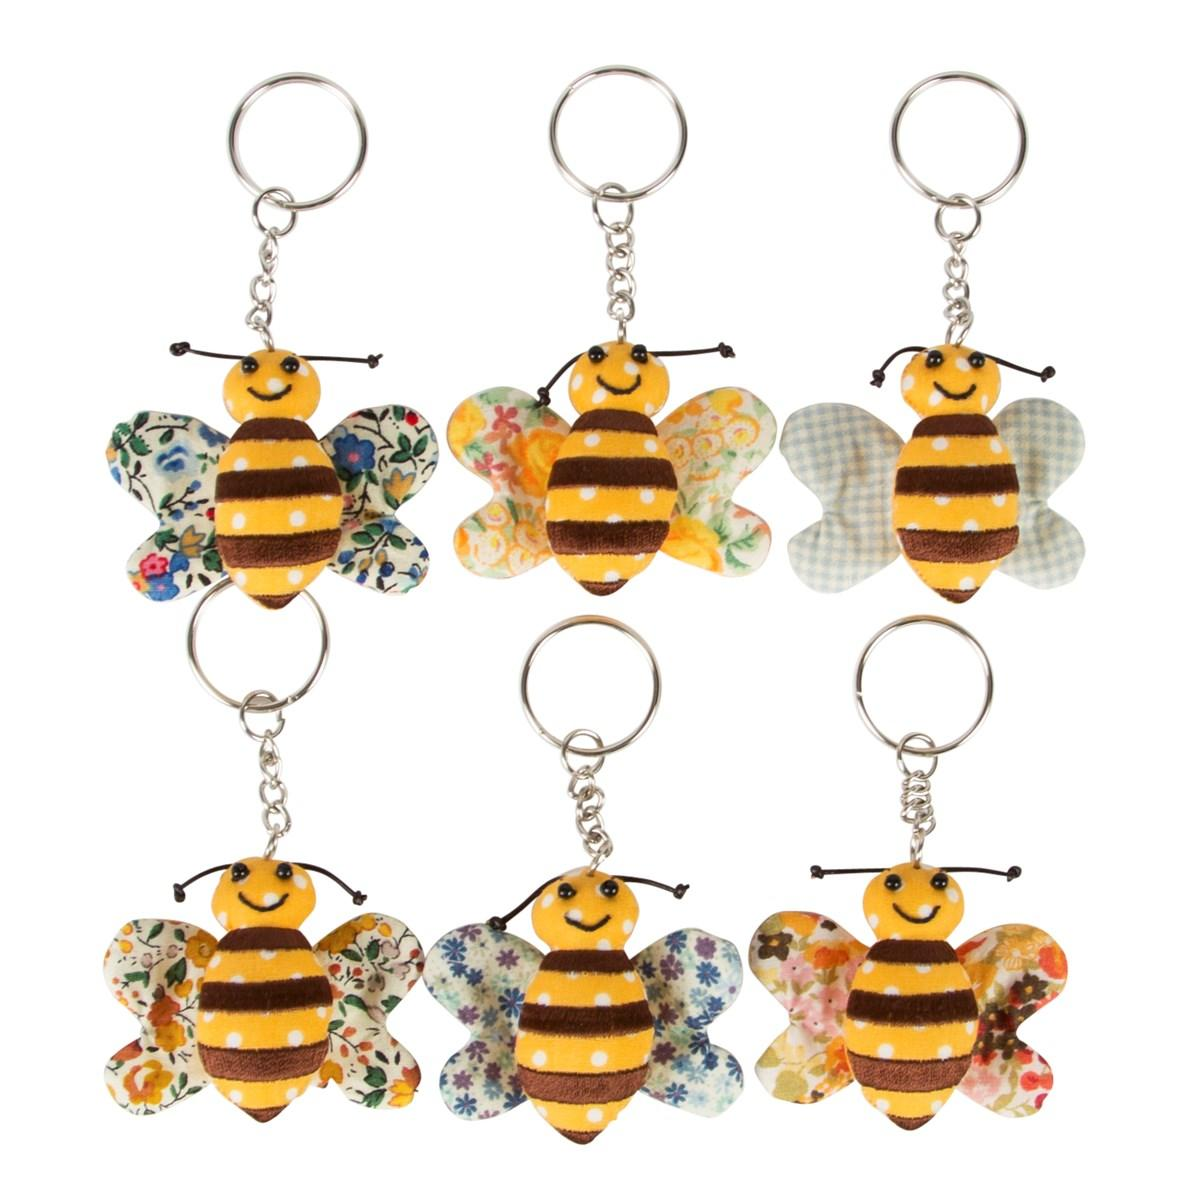 Bee key rings